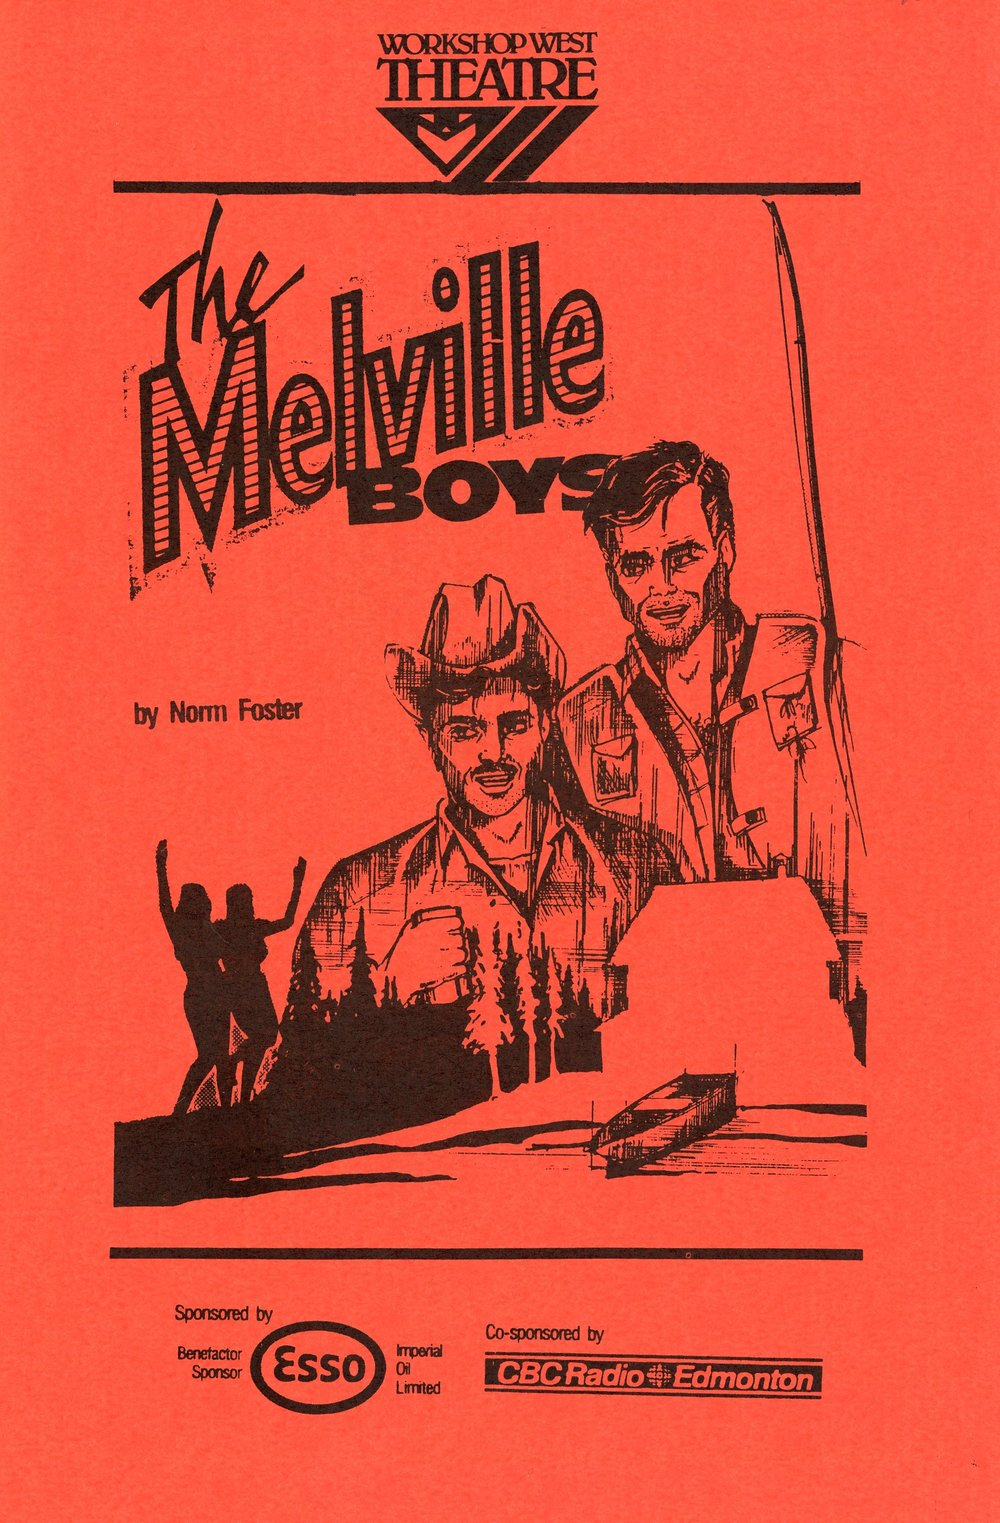 The Meville Boys (September, 1986) - Program Cover.jpg